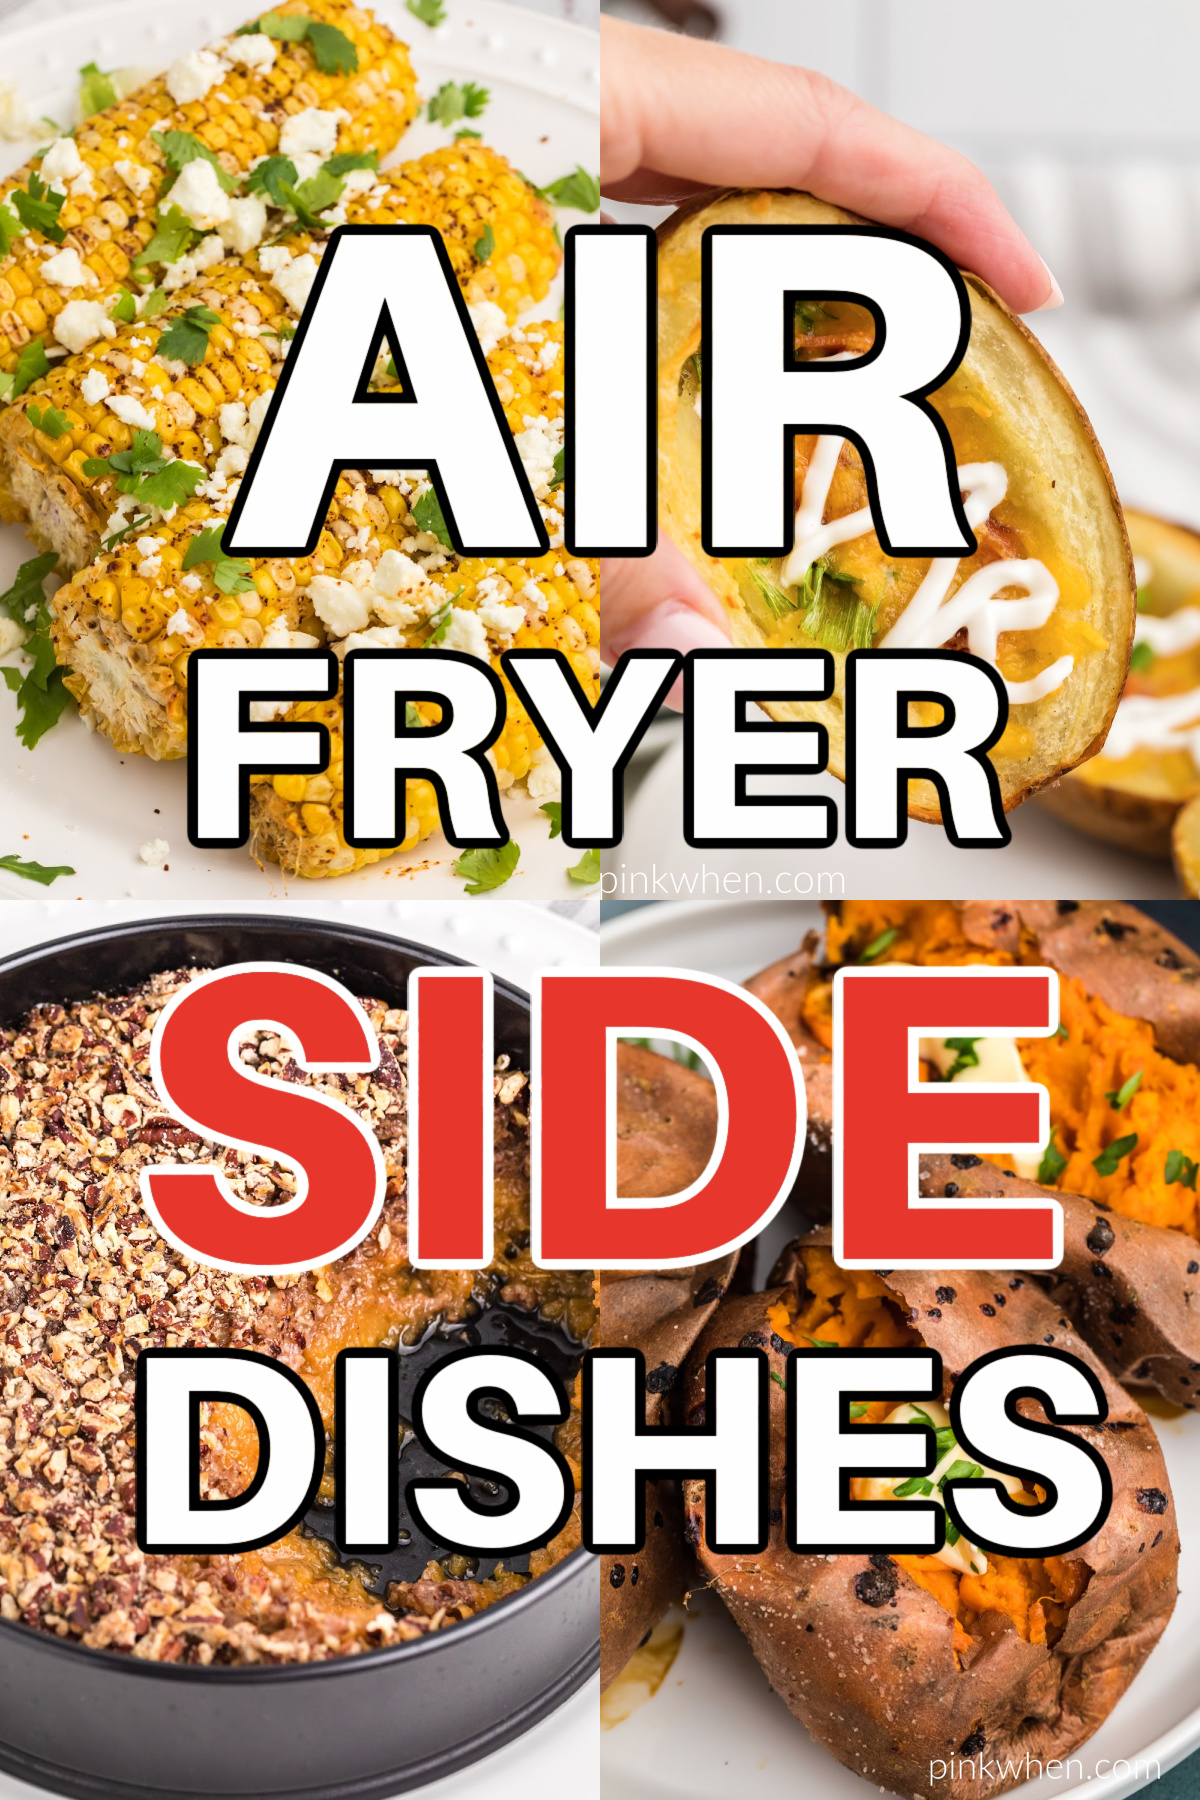 Air Fryer side dishes print imposed over a collage of air fryer side dish photos.